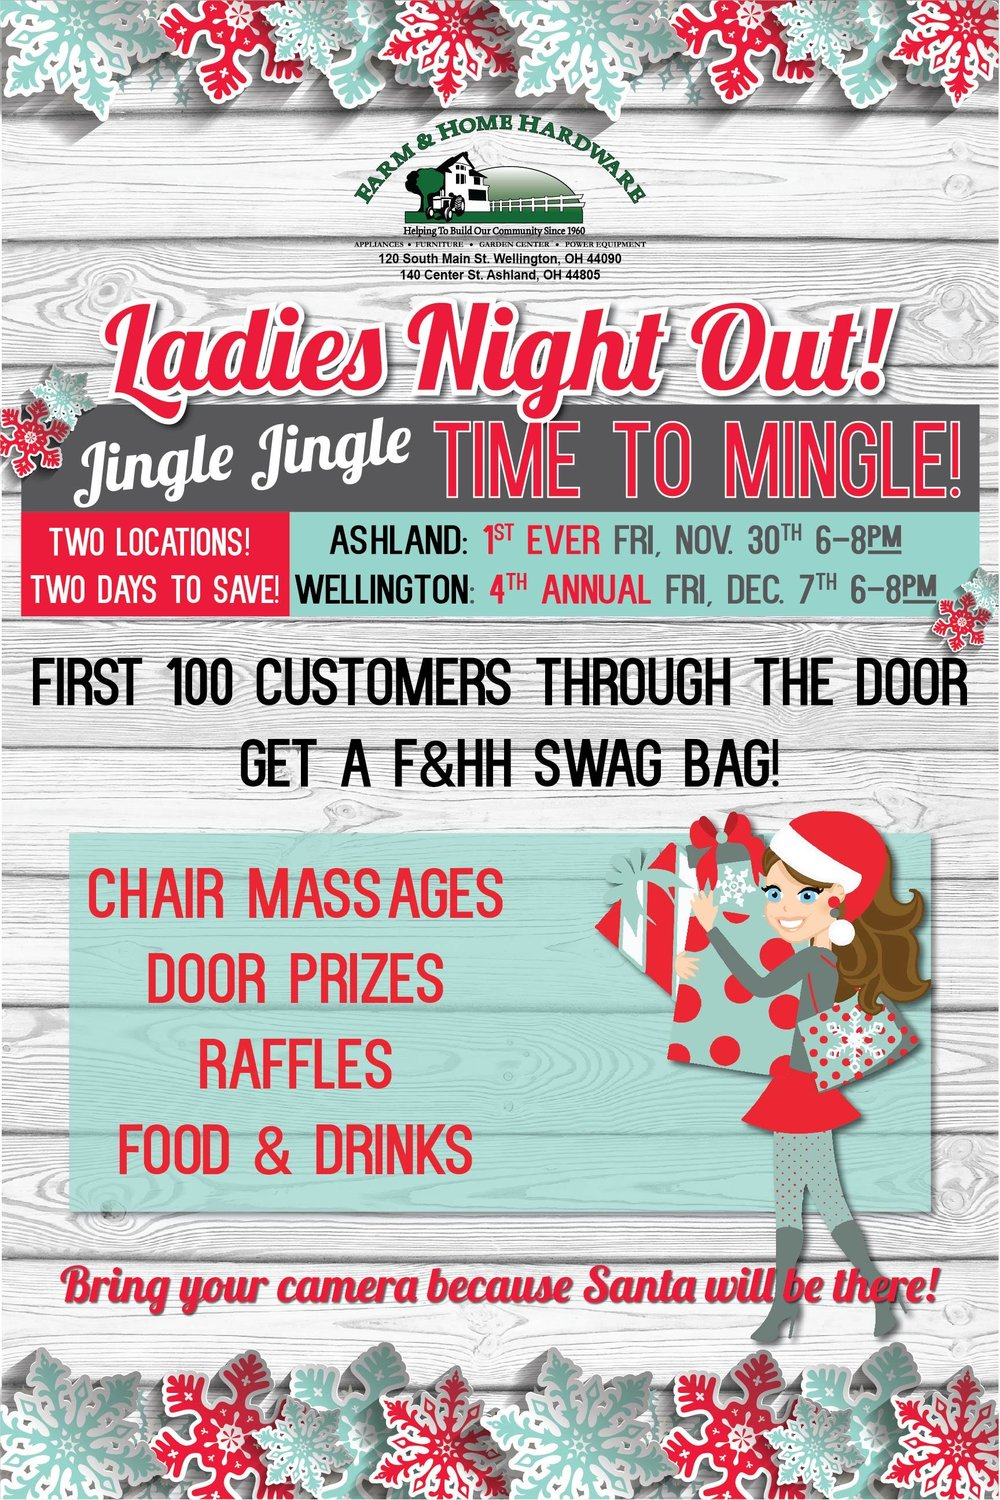 Farm & Home Hardware Ladies Night Out Wellington 2018